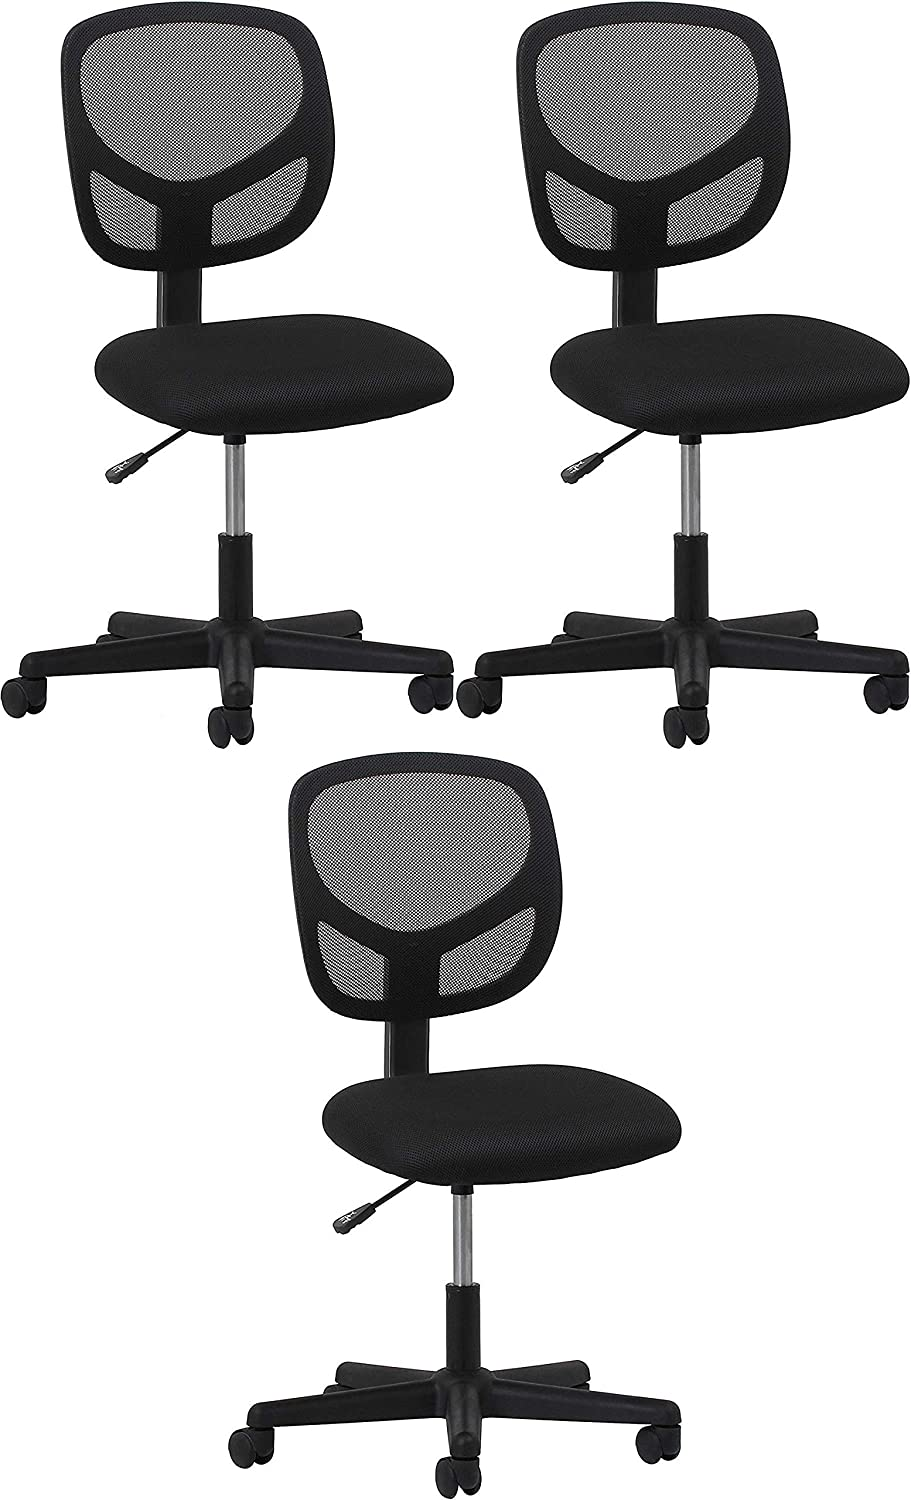 Essentials Swivel Armless Mid Back Mesh Task Chair – Ergonomic Computer Office Chair Pack of 3